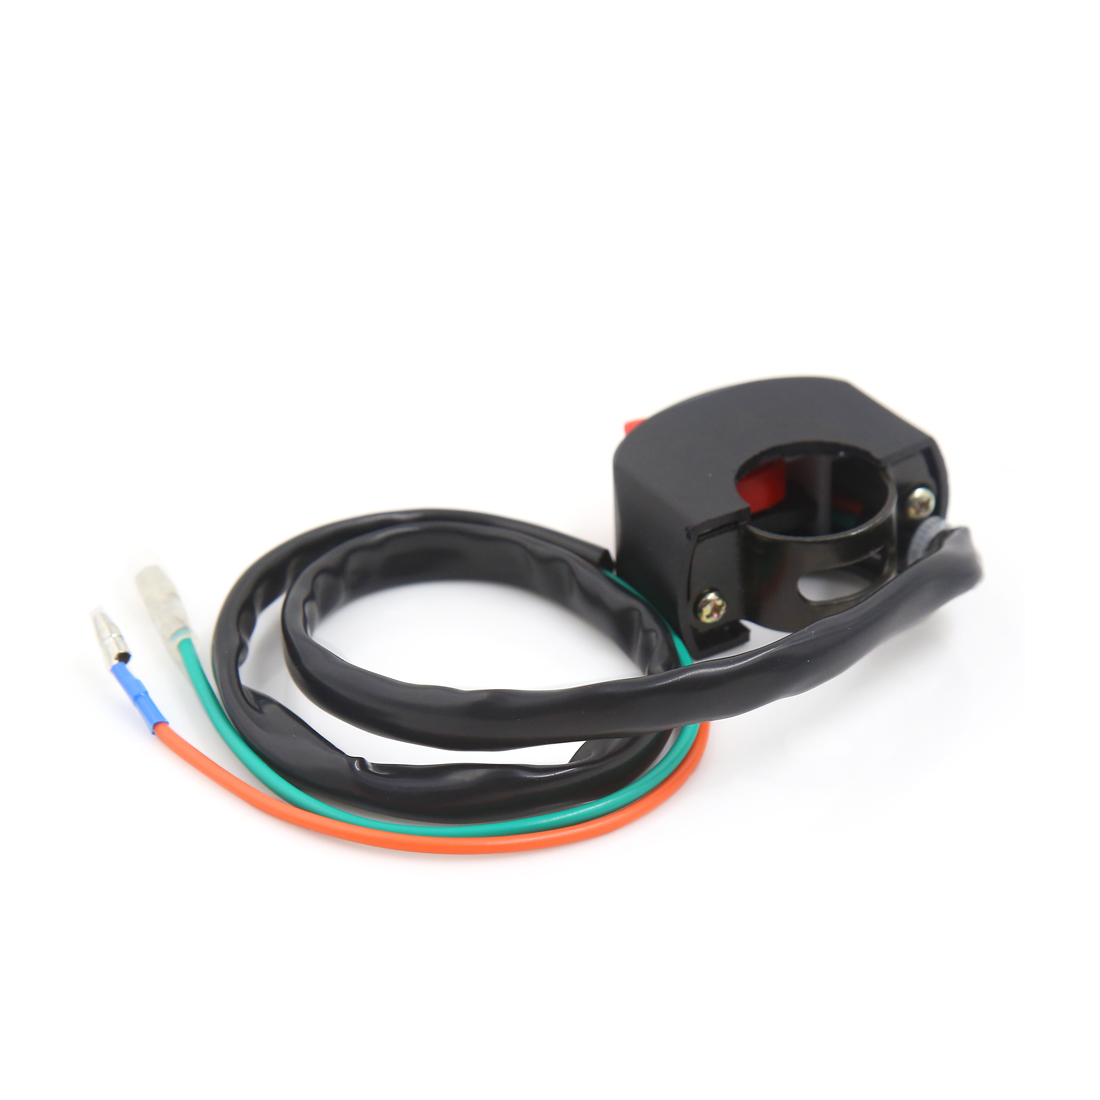 "Universal Motorcycle Scooter Headlight ON-OFF Switch Fit for 7/8"" Handlebar"